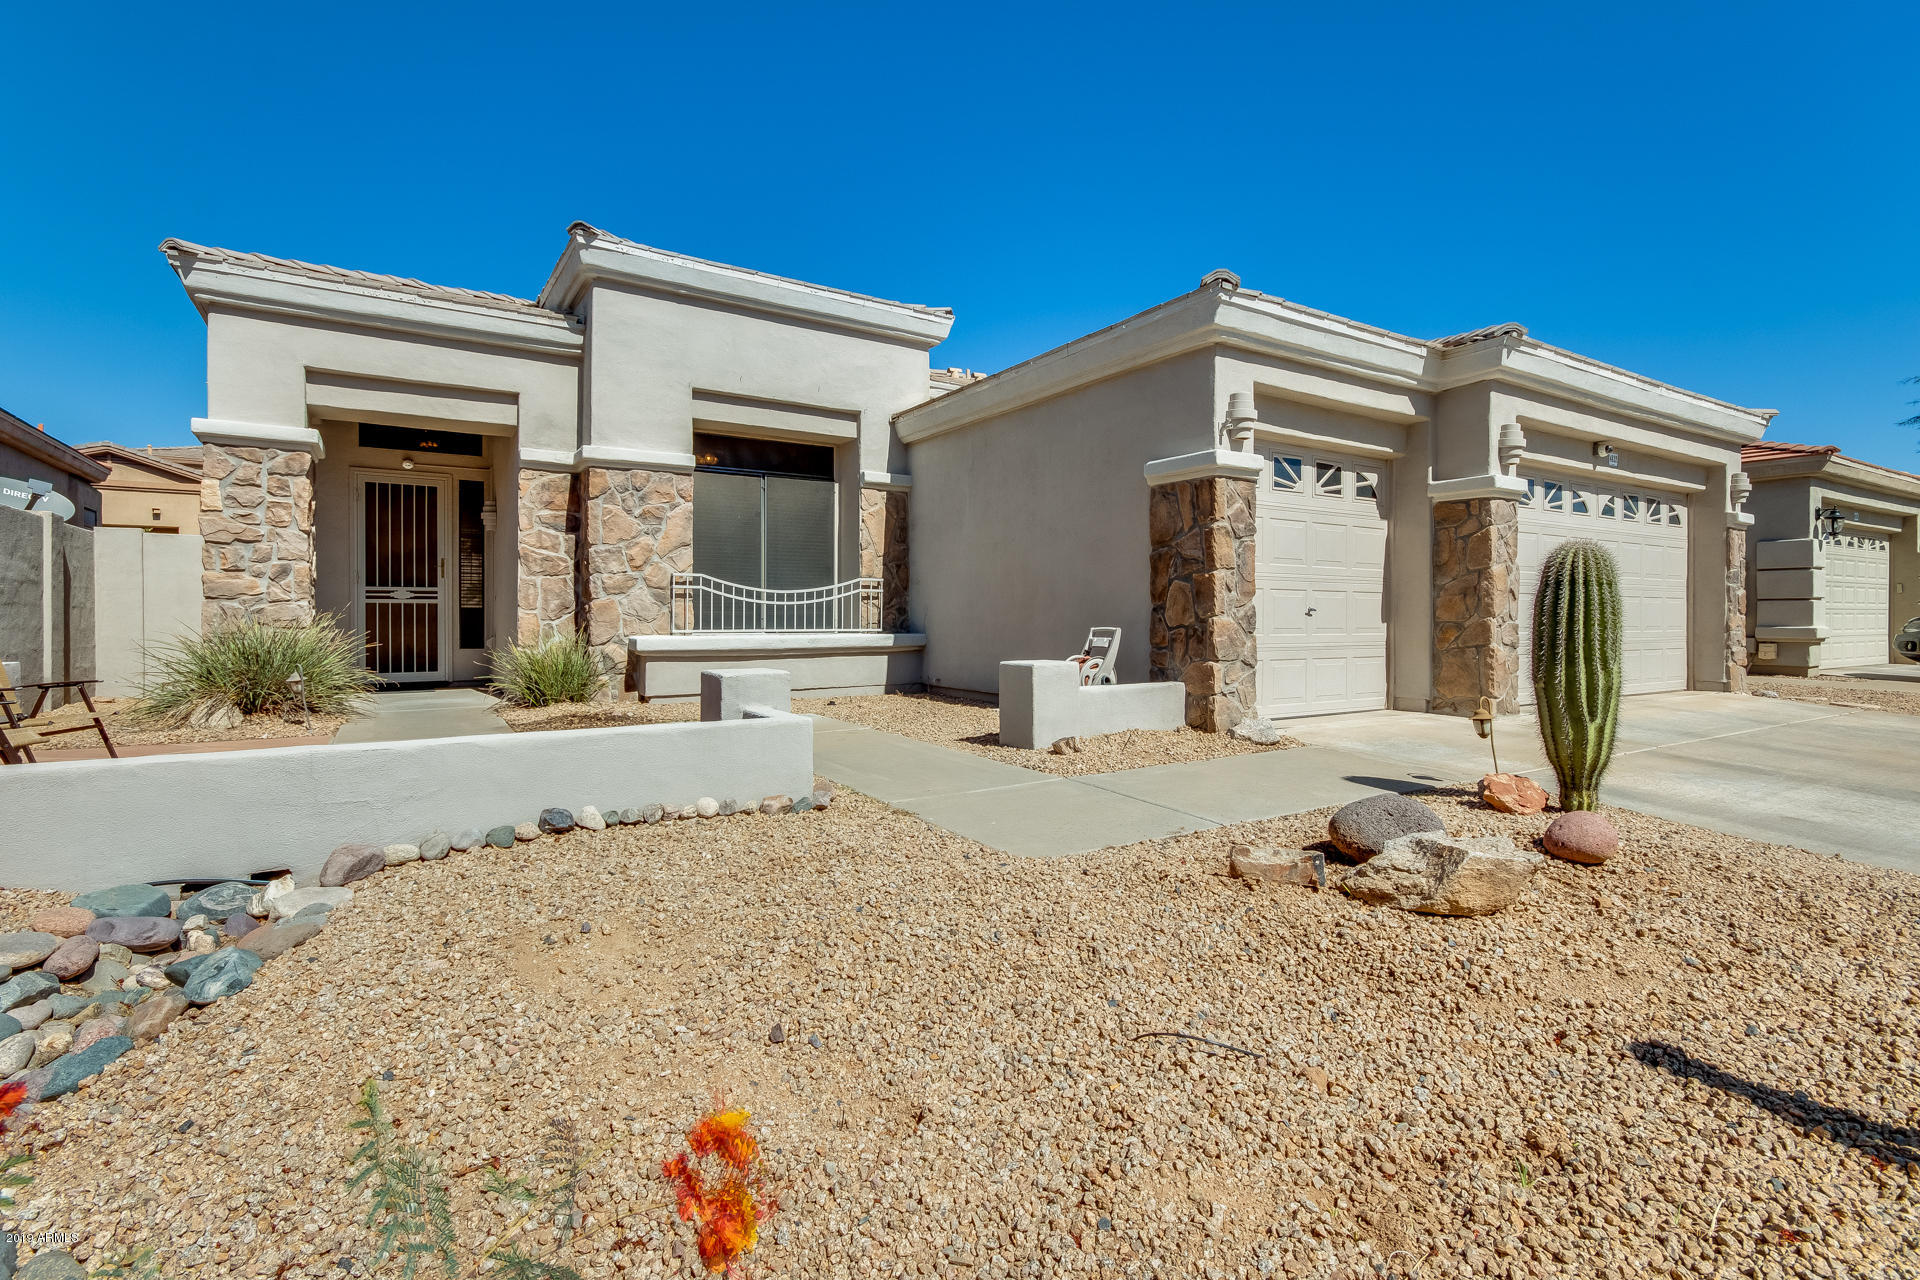 Photo of 4832 E DALEY Lane, Phoenix, AZ 85054